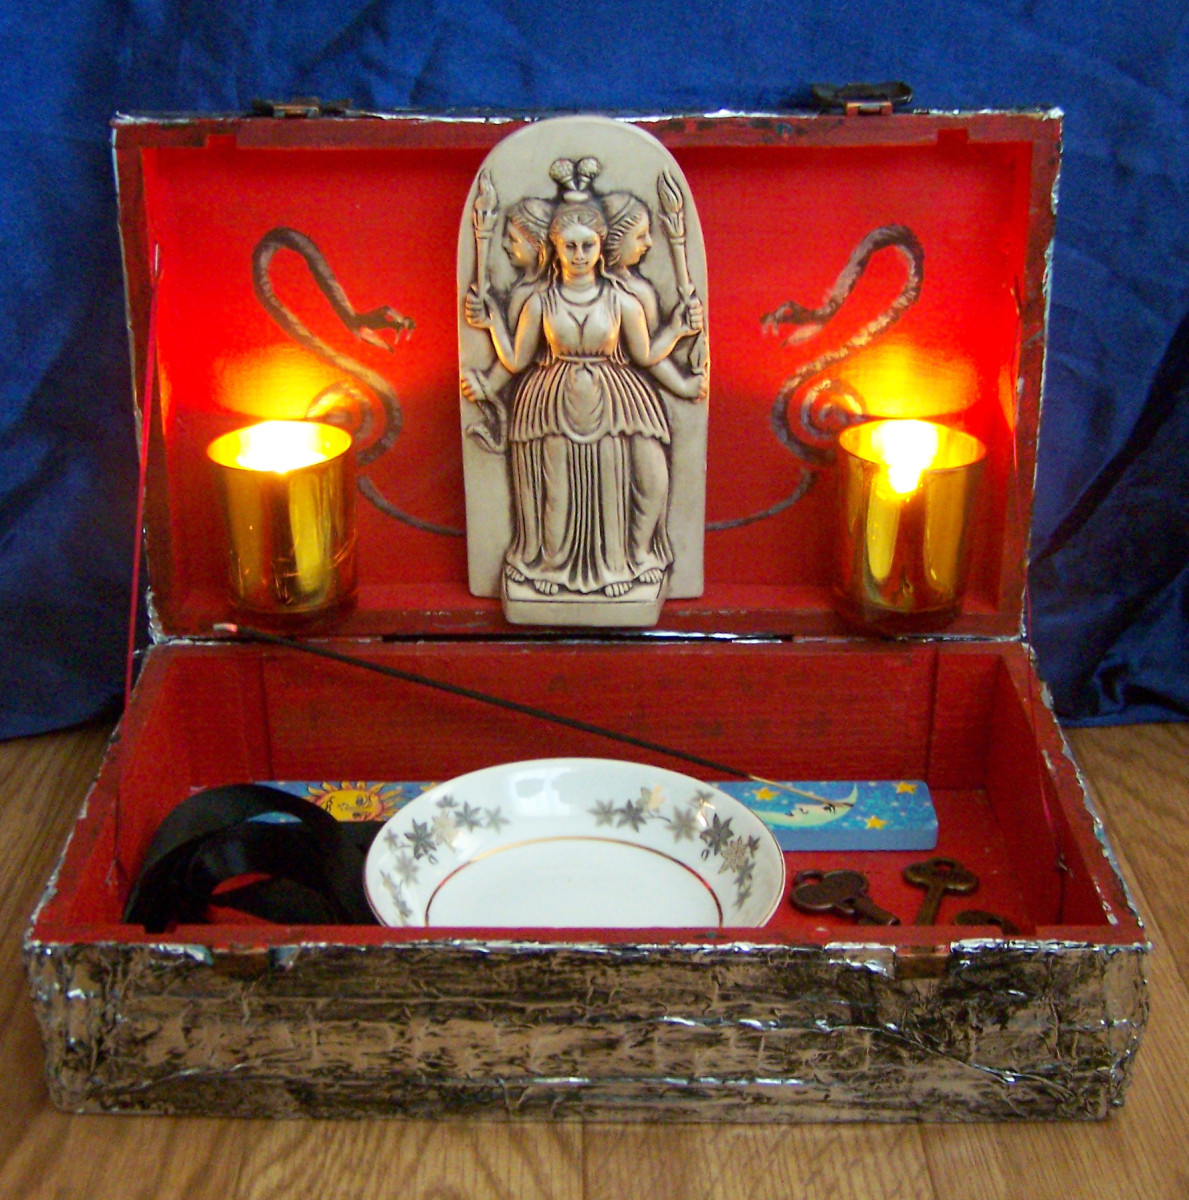 My portable Hecate shrine—it's in a wooden cigar box so I can put it away or tote it along whenever I want.